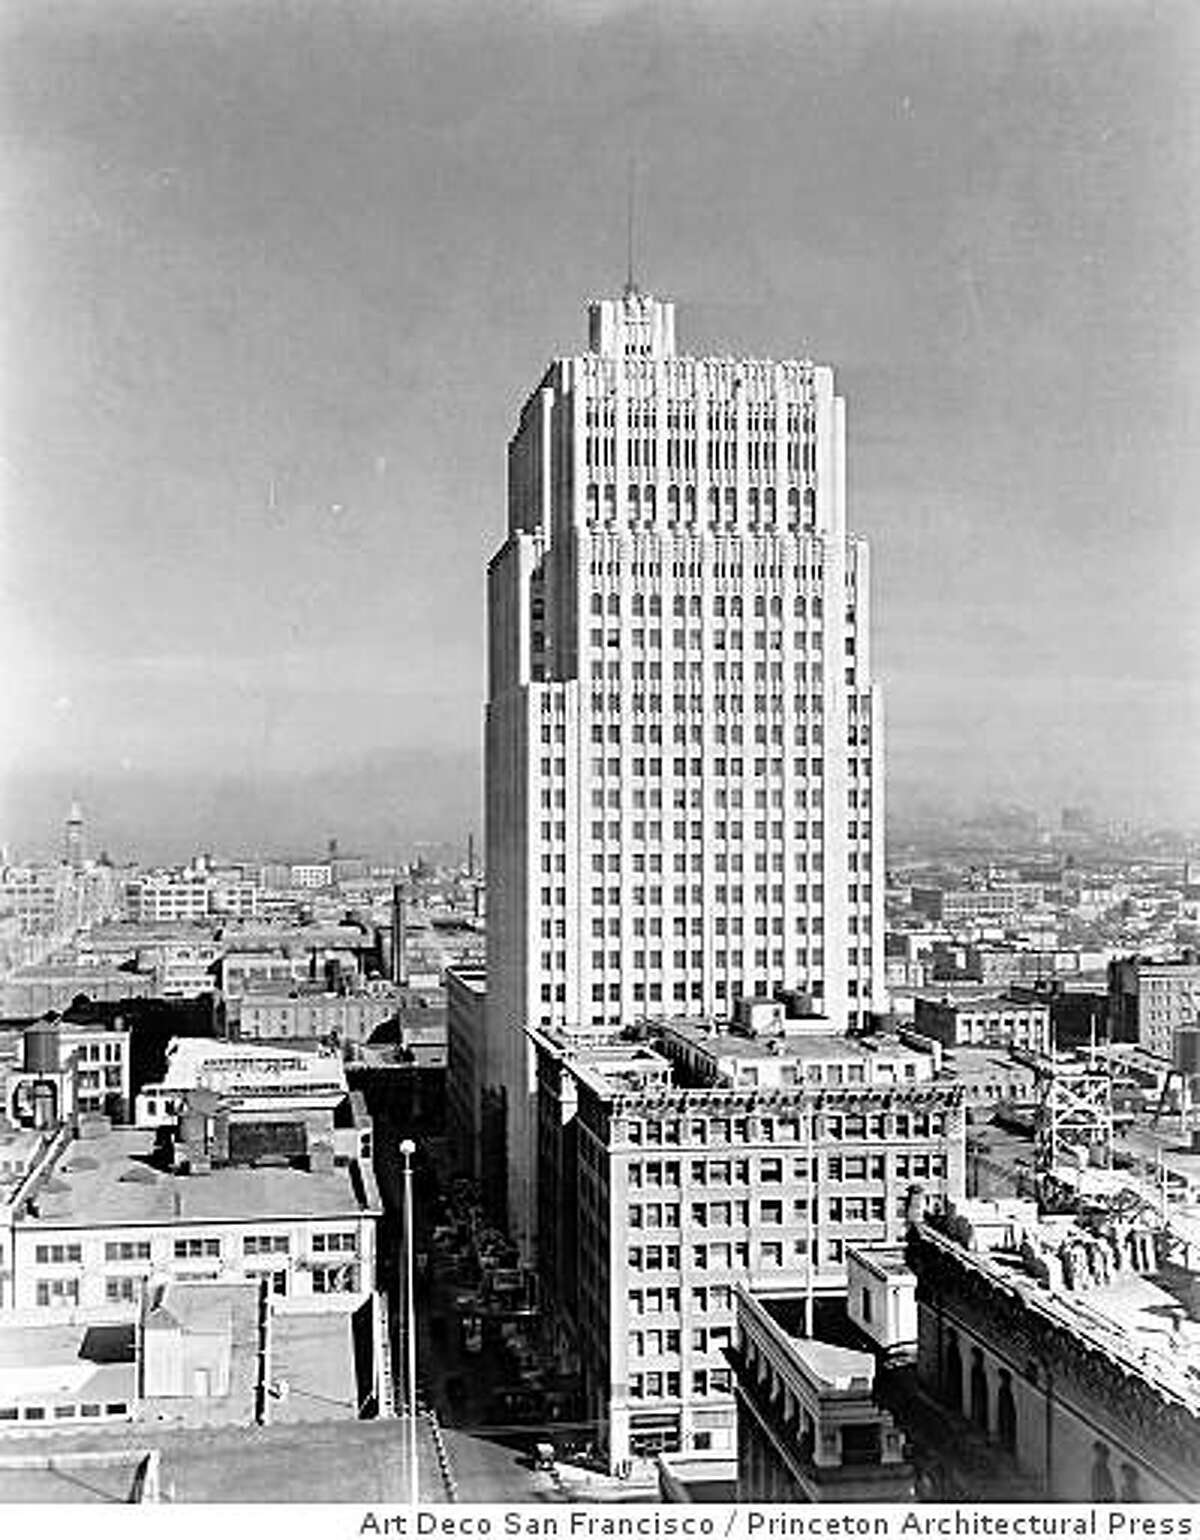 Timothy Pflueger's Pacific Telephone Building was the tallest building in San Francisco when it opened in 1925, and the first tower south of Market Street when it opened. From the new monograph on Pflueger